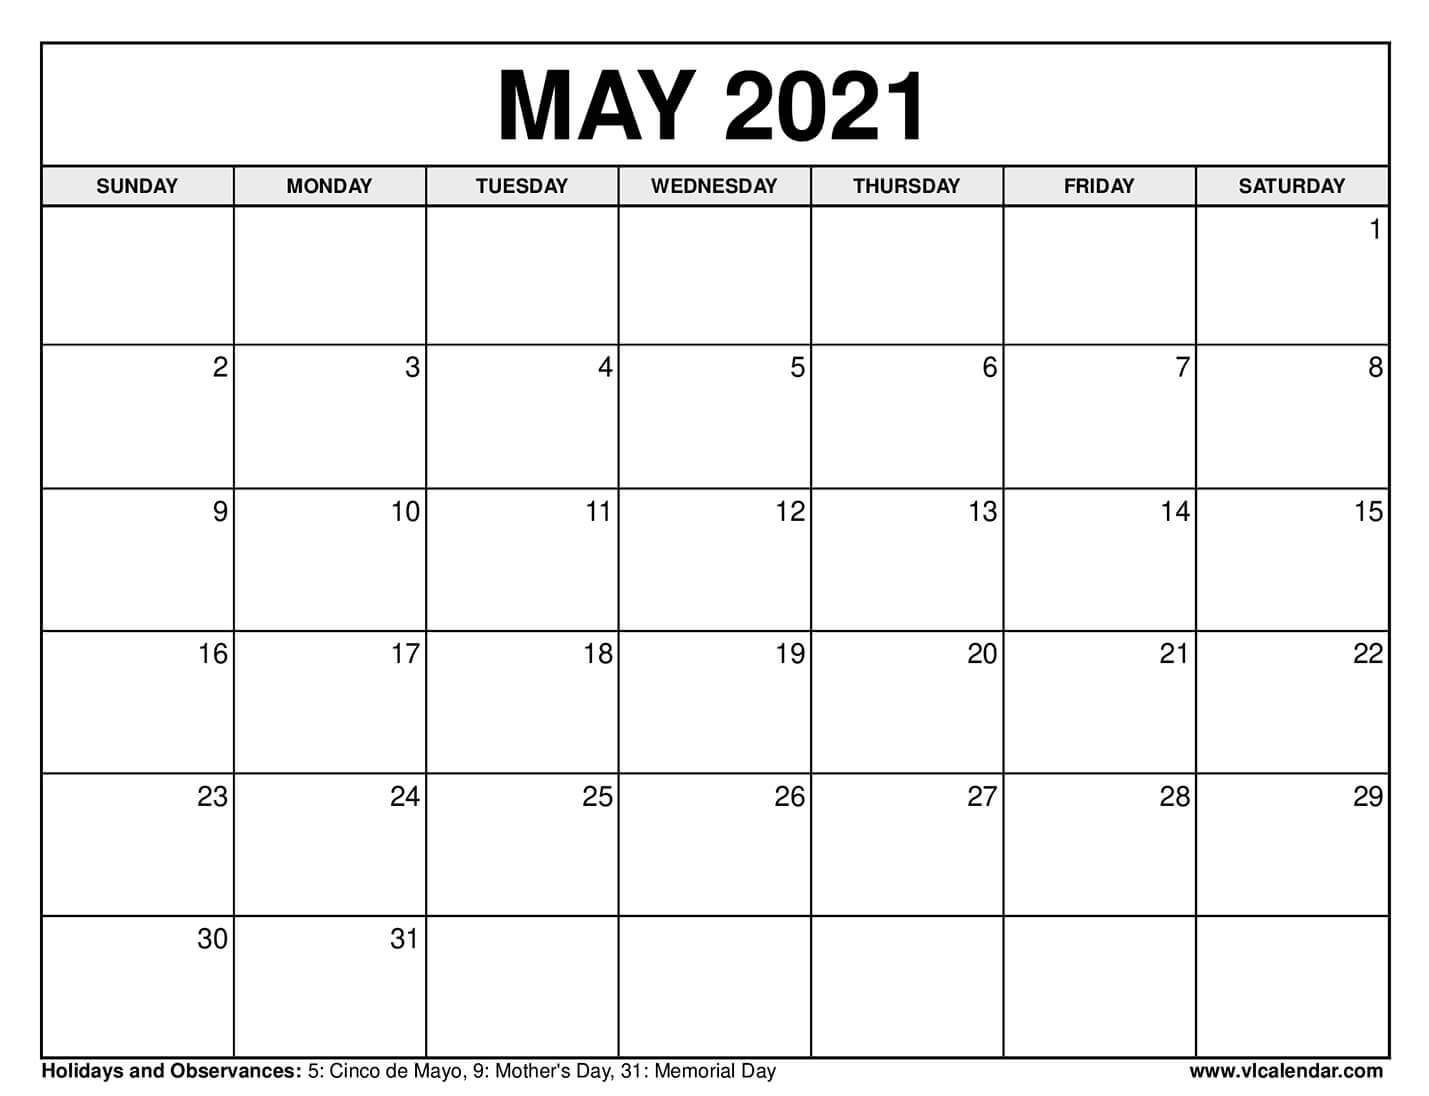 May 2021 Calendar Images Background